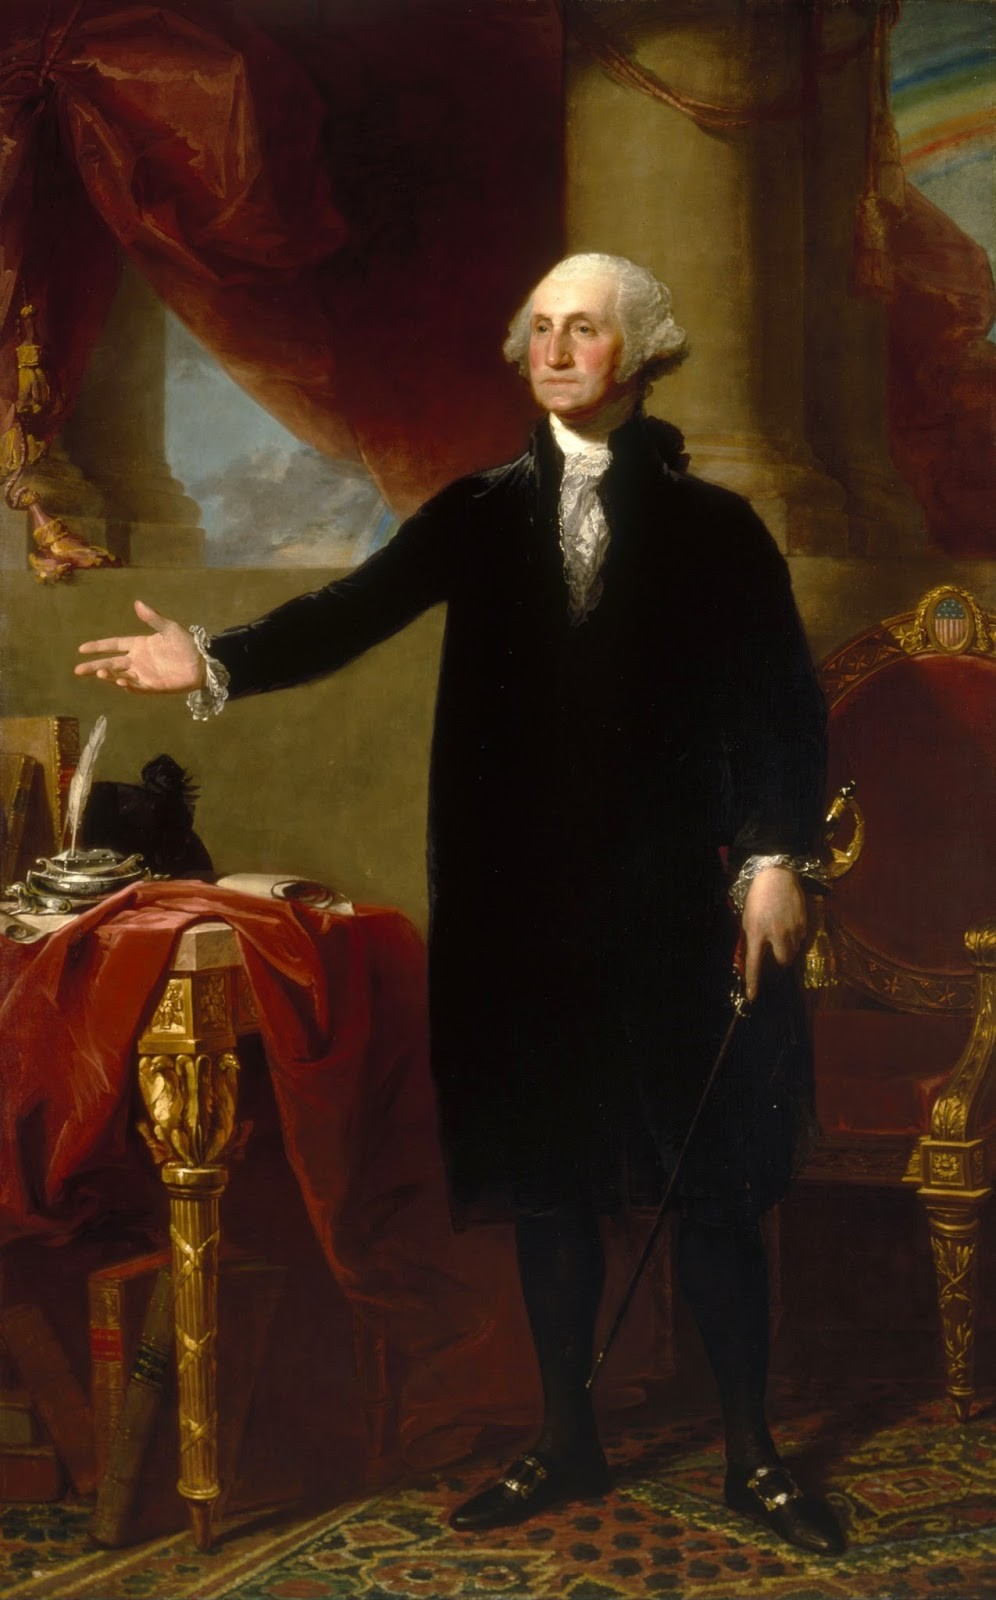 George Washington: Solo Son Before Founding Father